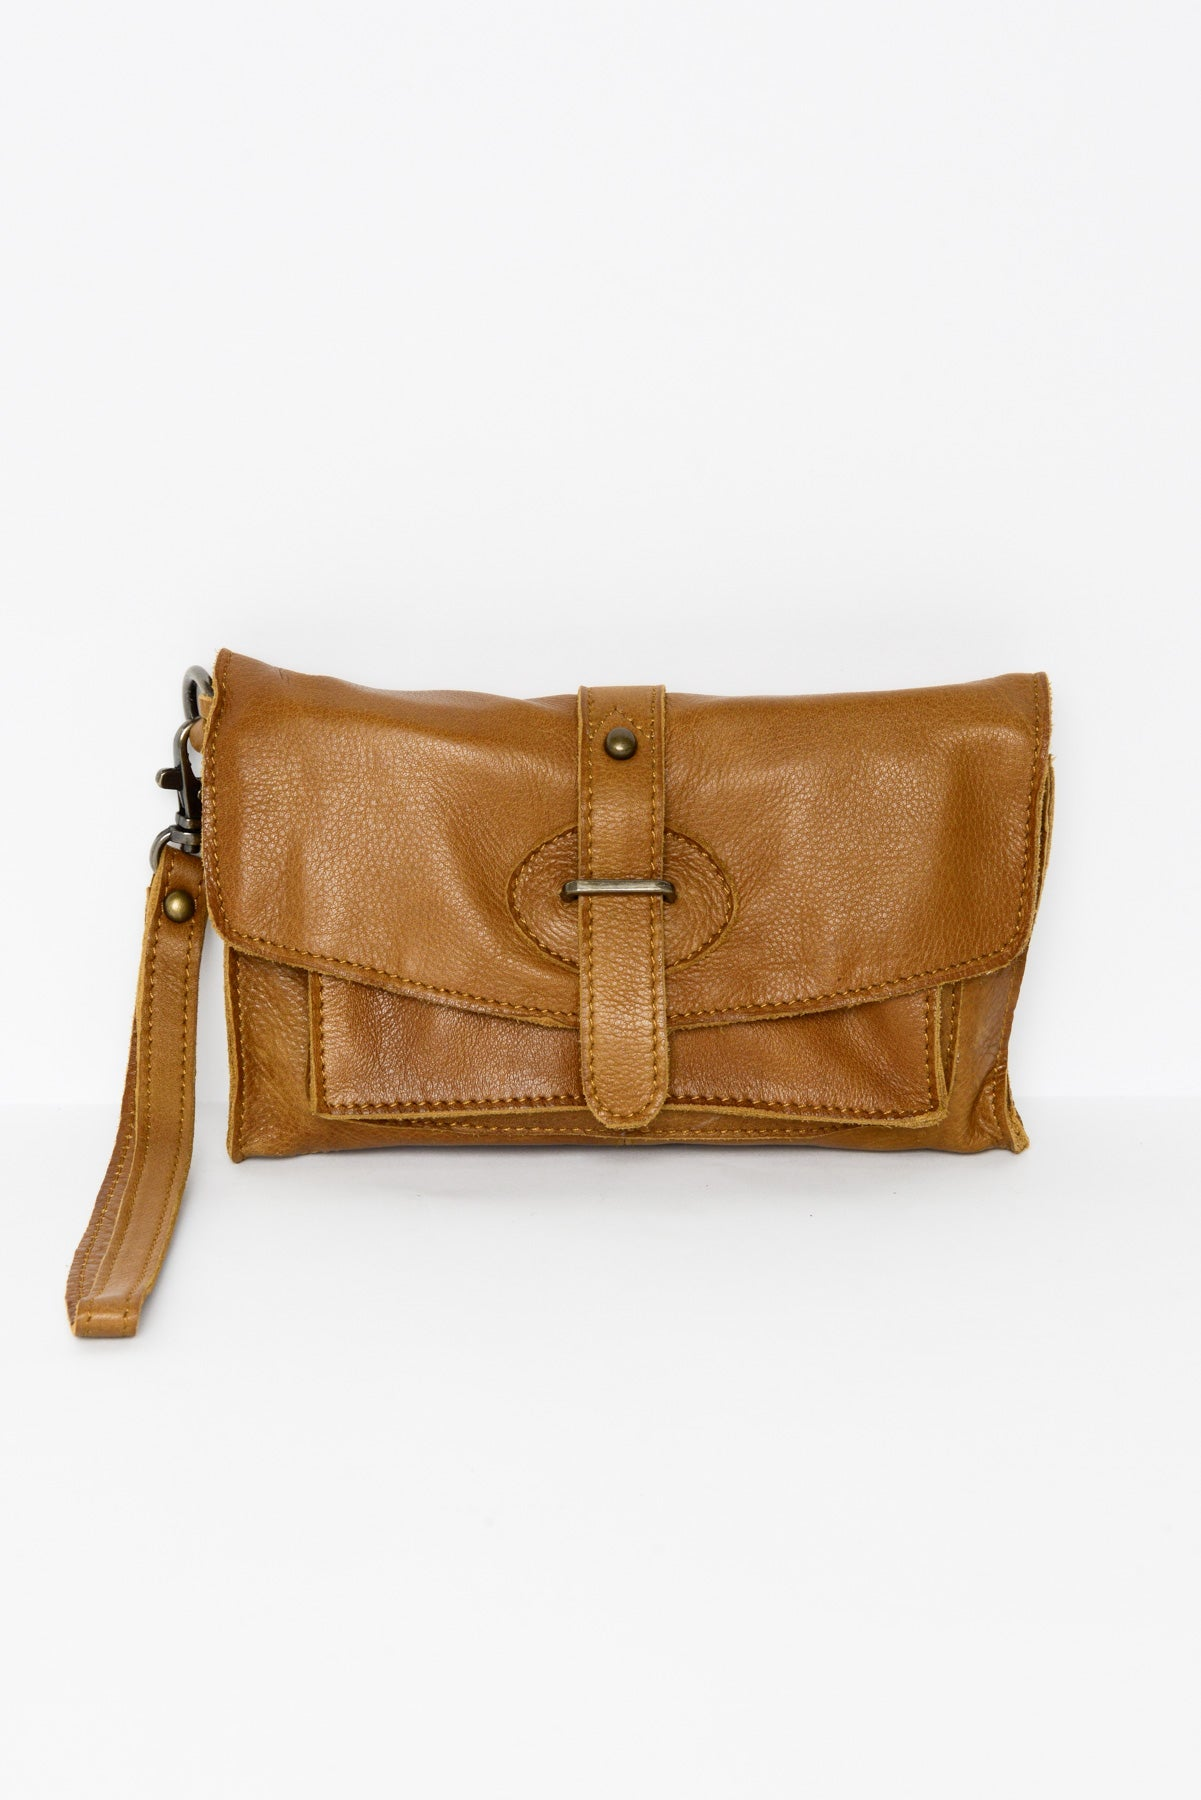 Amelia Tan Leather Clutch - Blue Bungalow